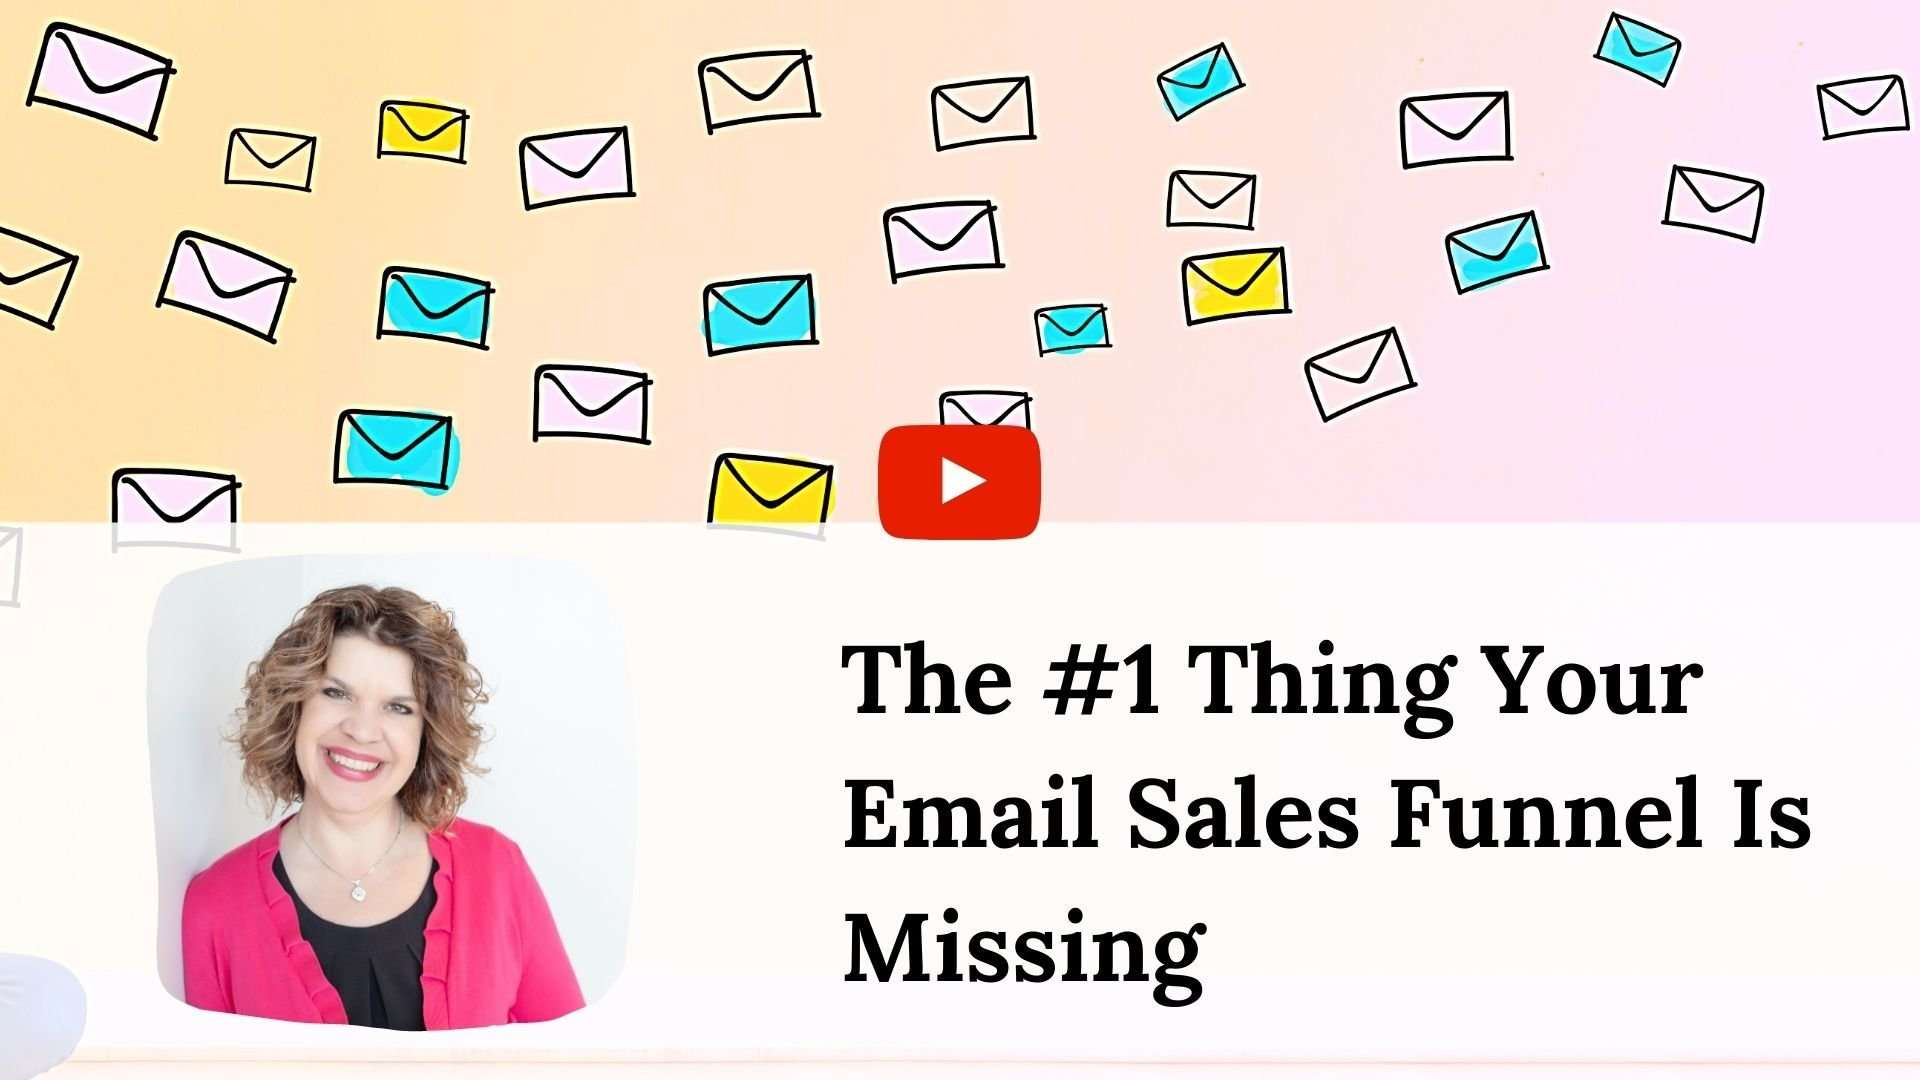 ACCTV#7 – The #1 Thing Your Email Sales Funnel Is Missing